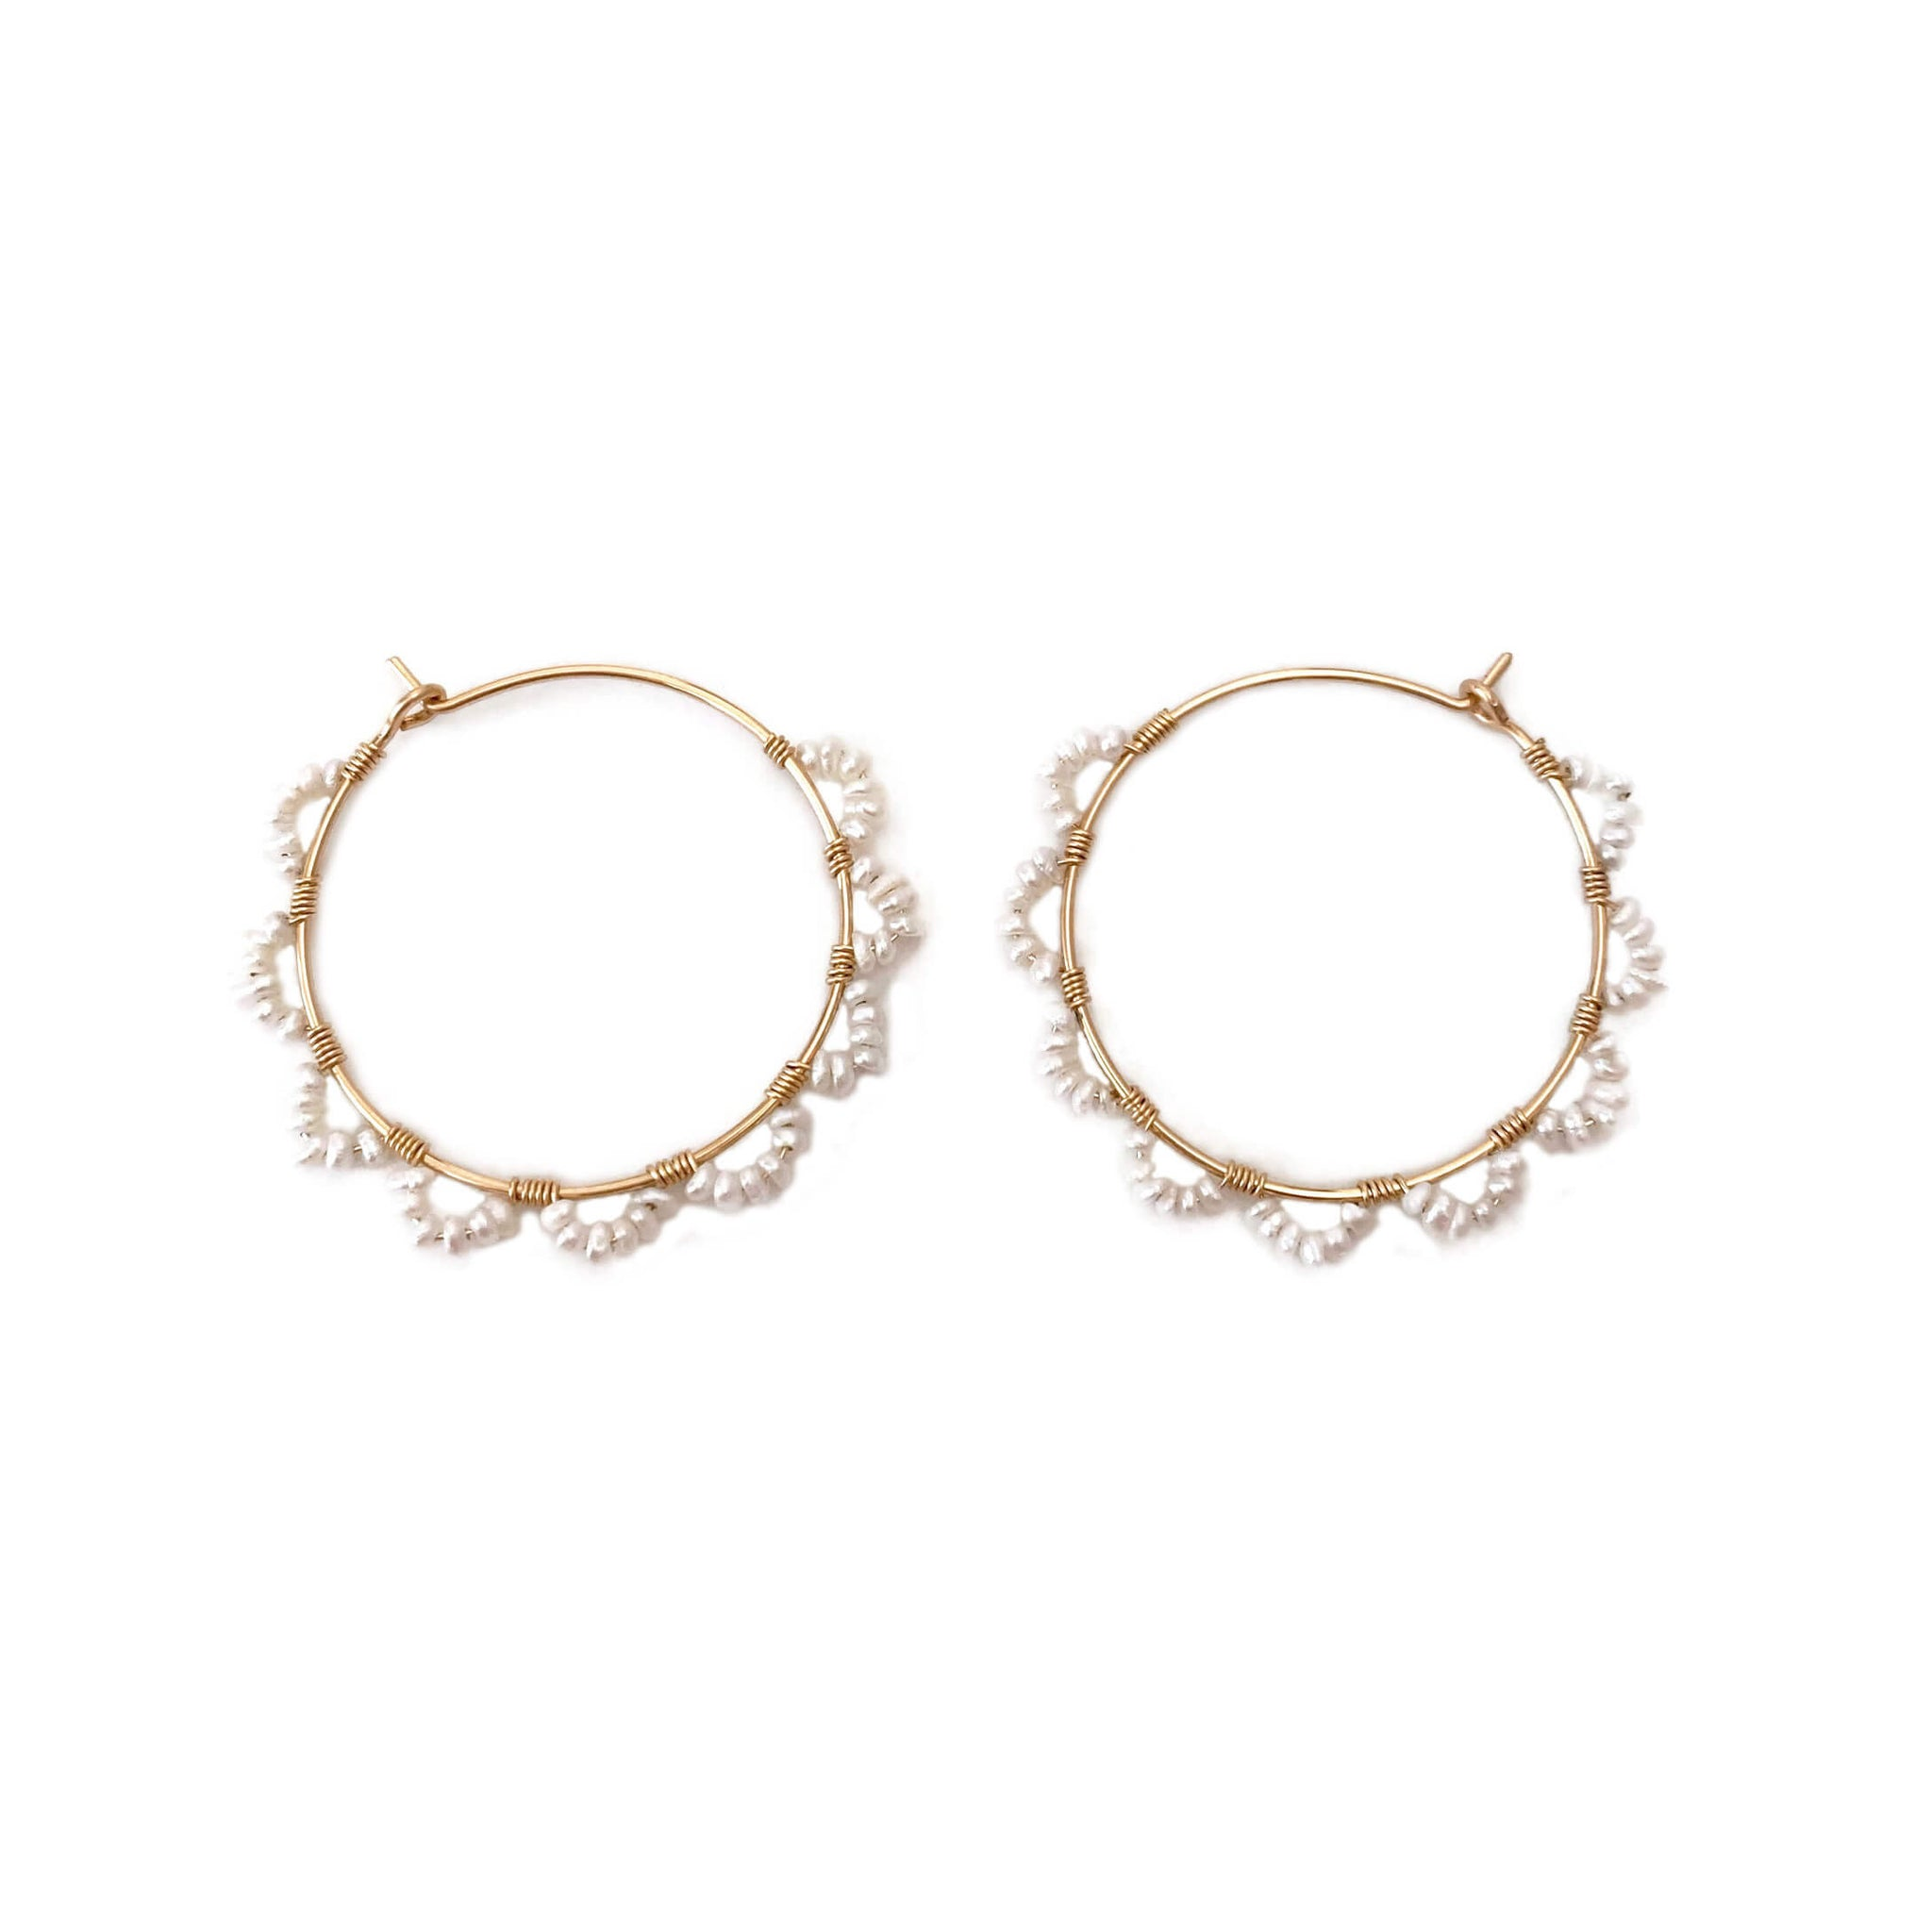 there are a pair of pearl hoop earrings.  They are made of real fresh water pearl and gold filled wire.  They look like petal flower hoops.